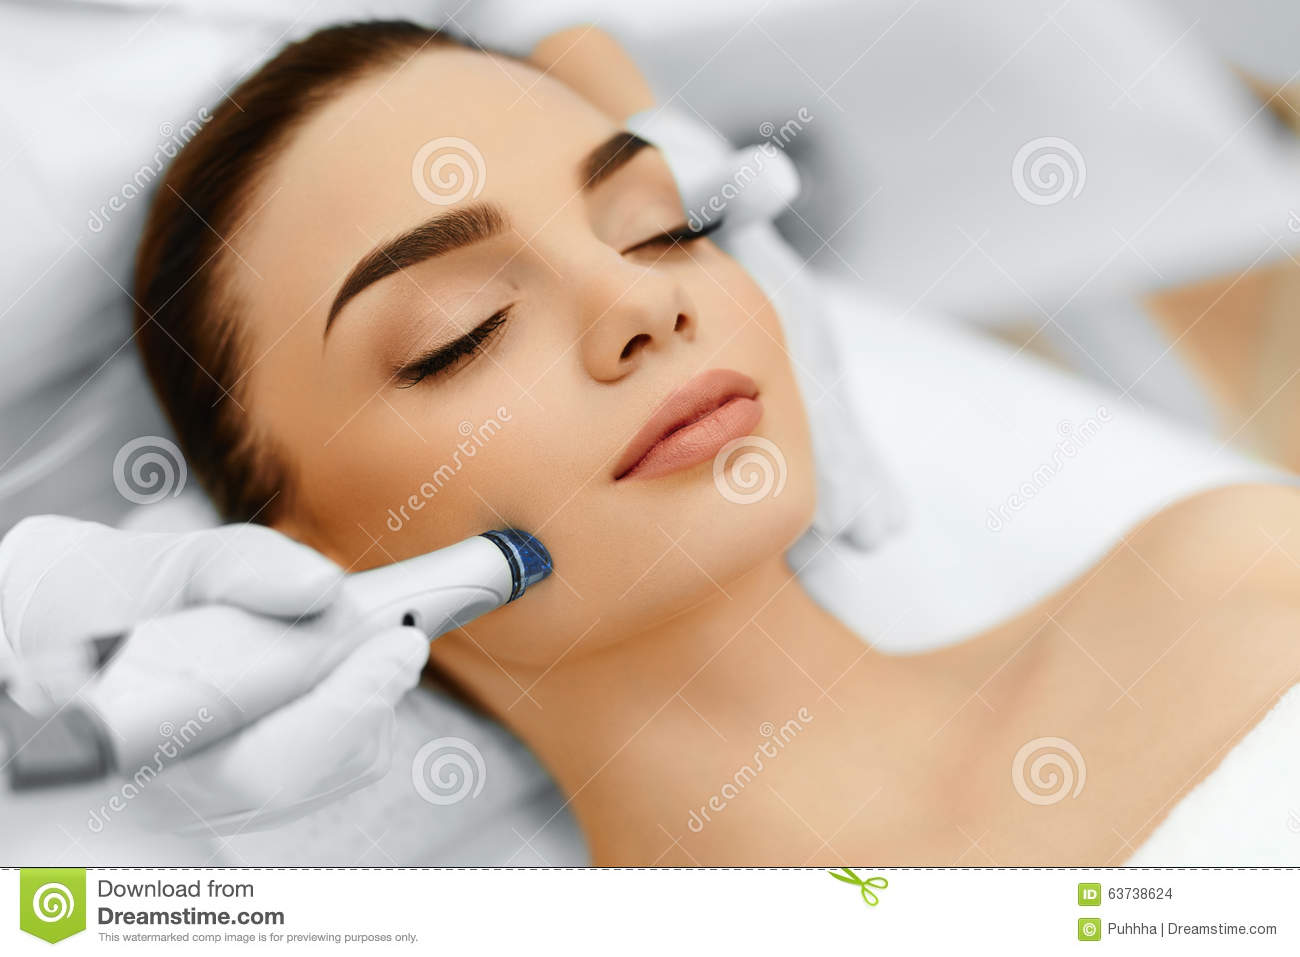 Download Face Skin Care. Facial Hydro Microdermabrasion Peeling Treatment Stock Photo - Image of dermabrasion, close: 63738624